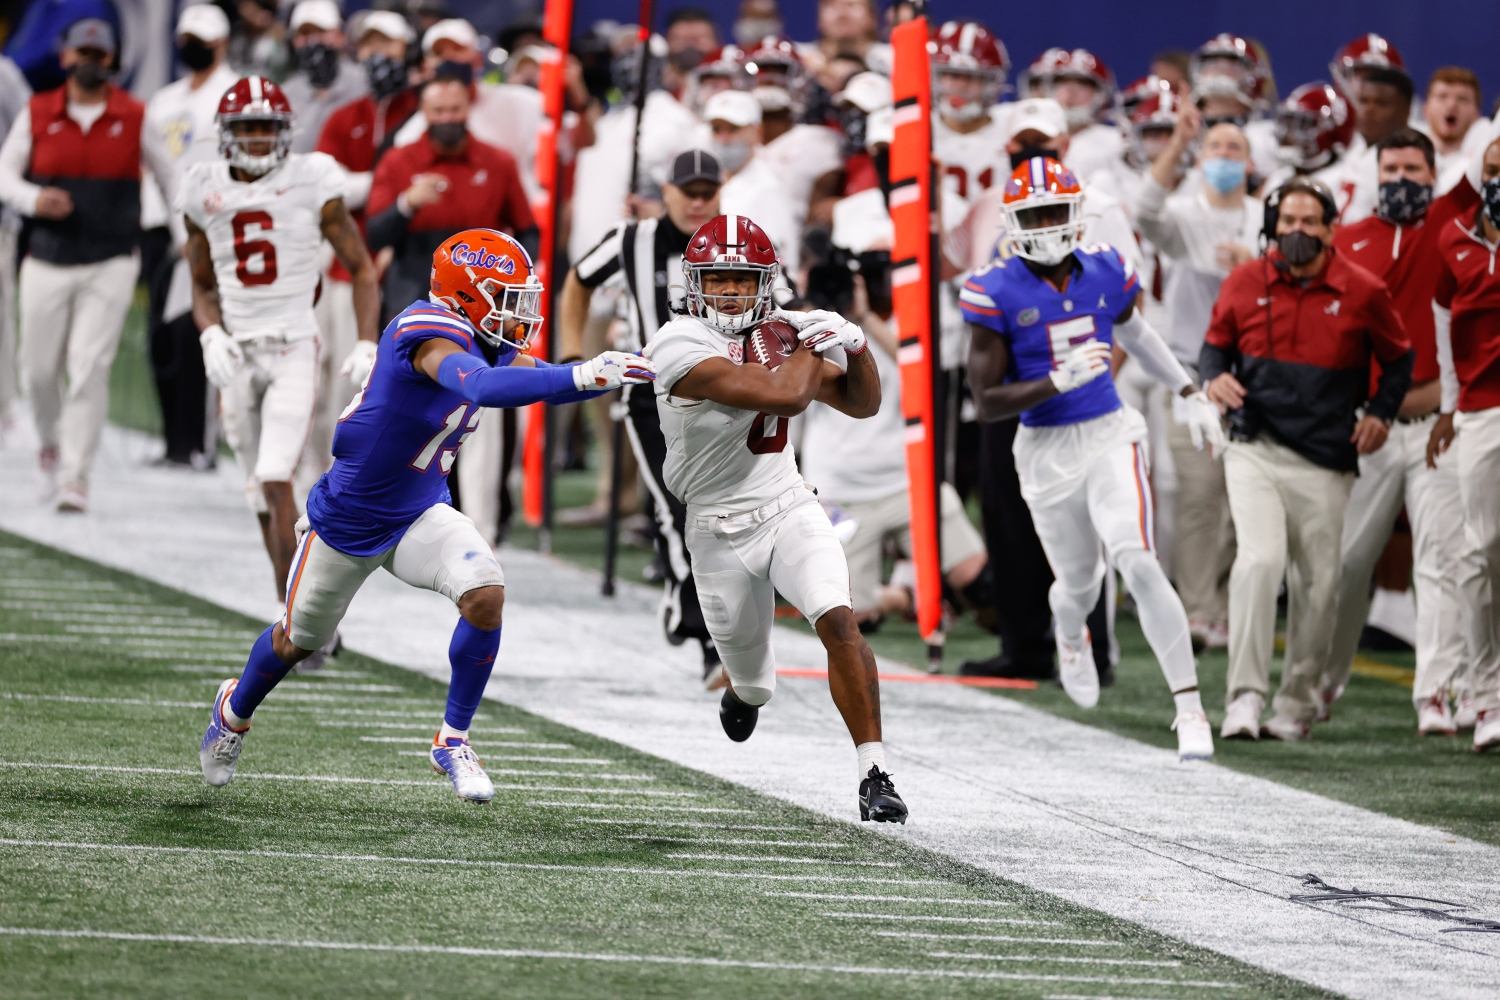 SEC Football: CBS Sports Announces 2021 Schedule Including Alabama At Florida On September 18